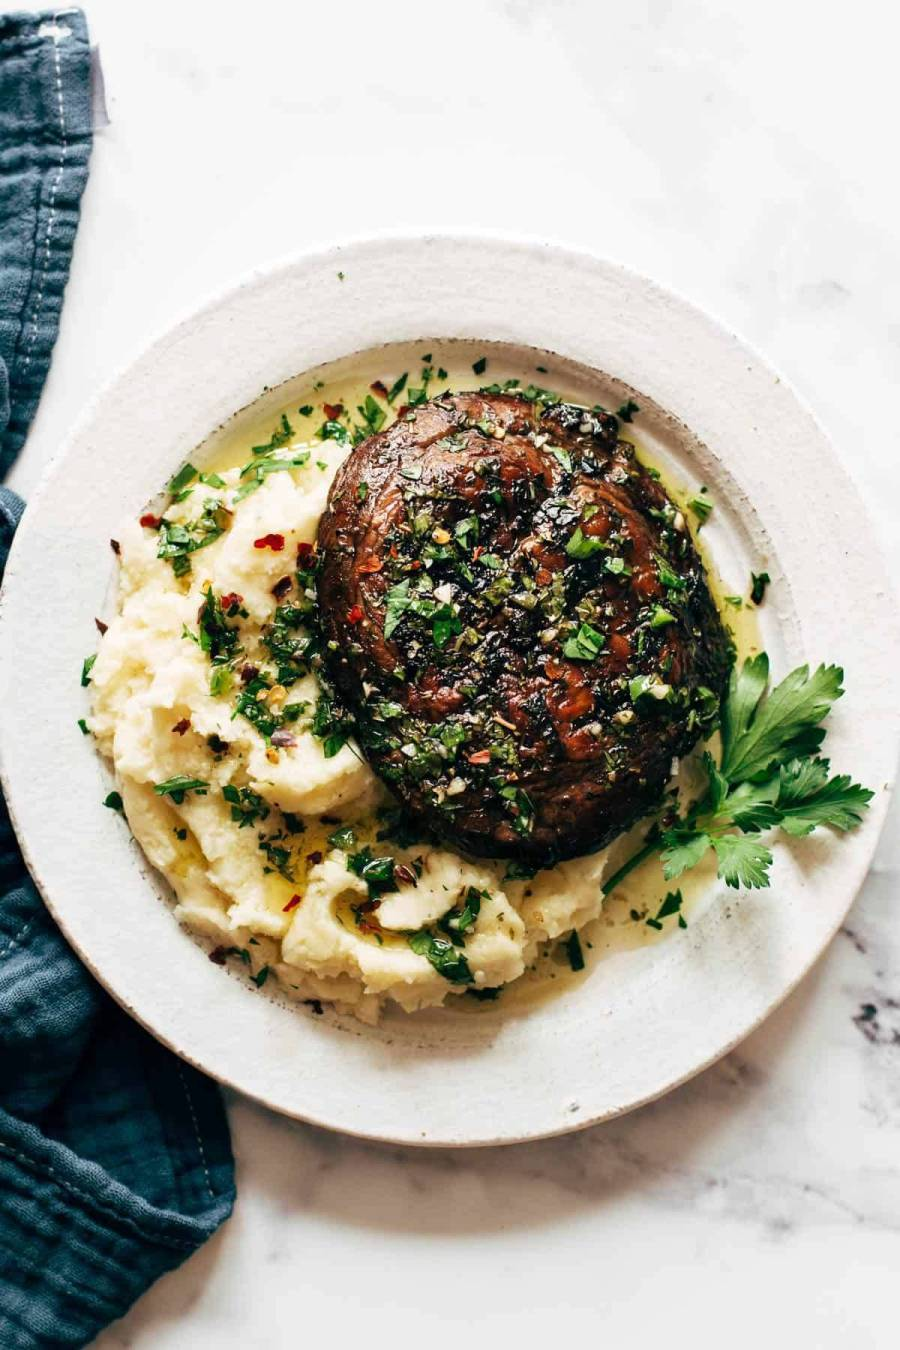 Grilled portobello on goat cheese mashed potatoes.